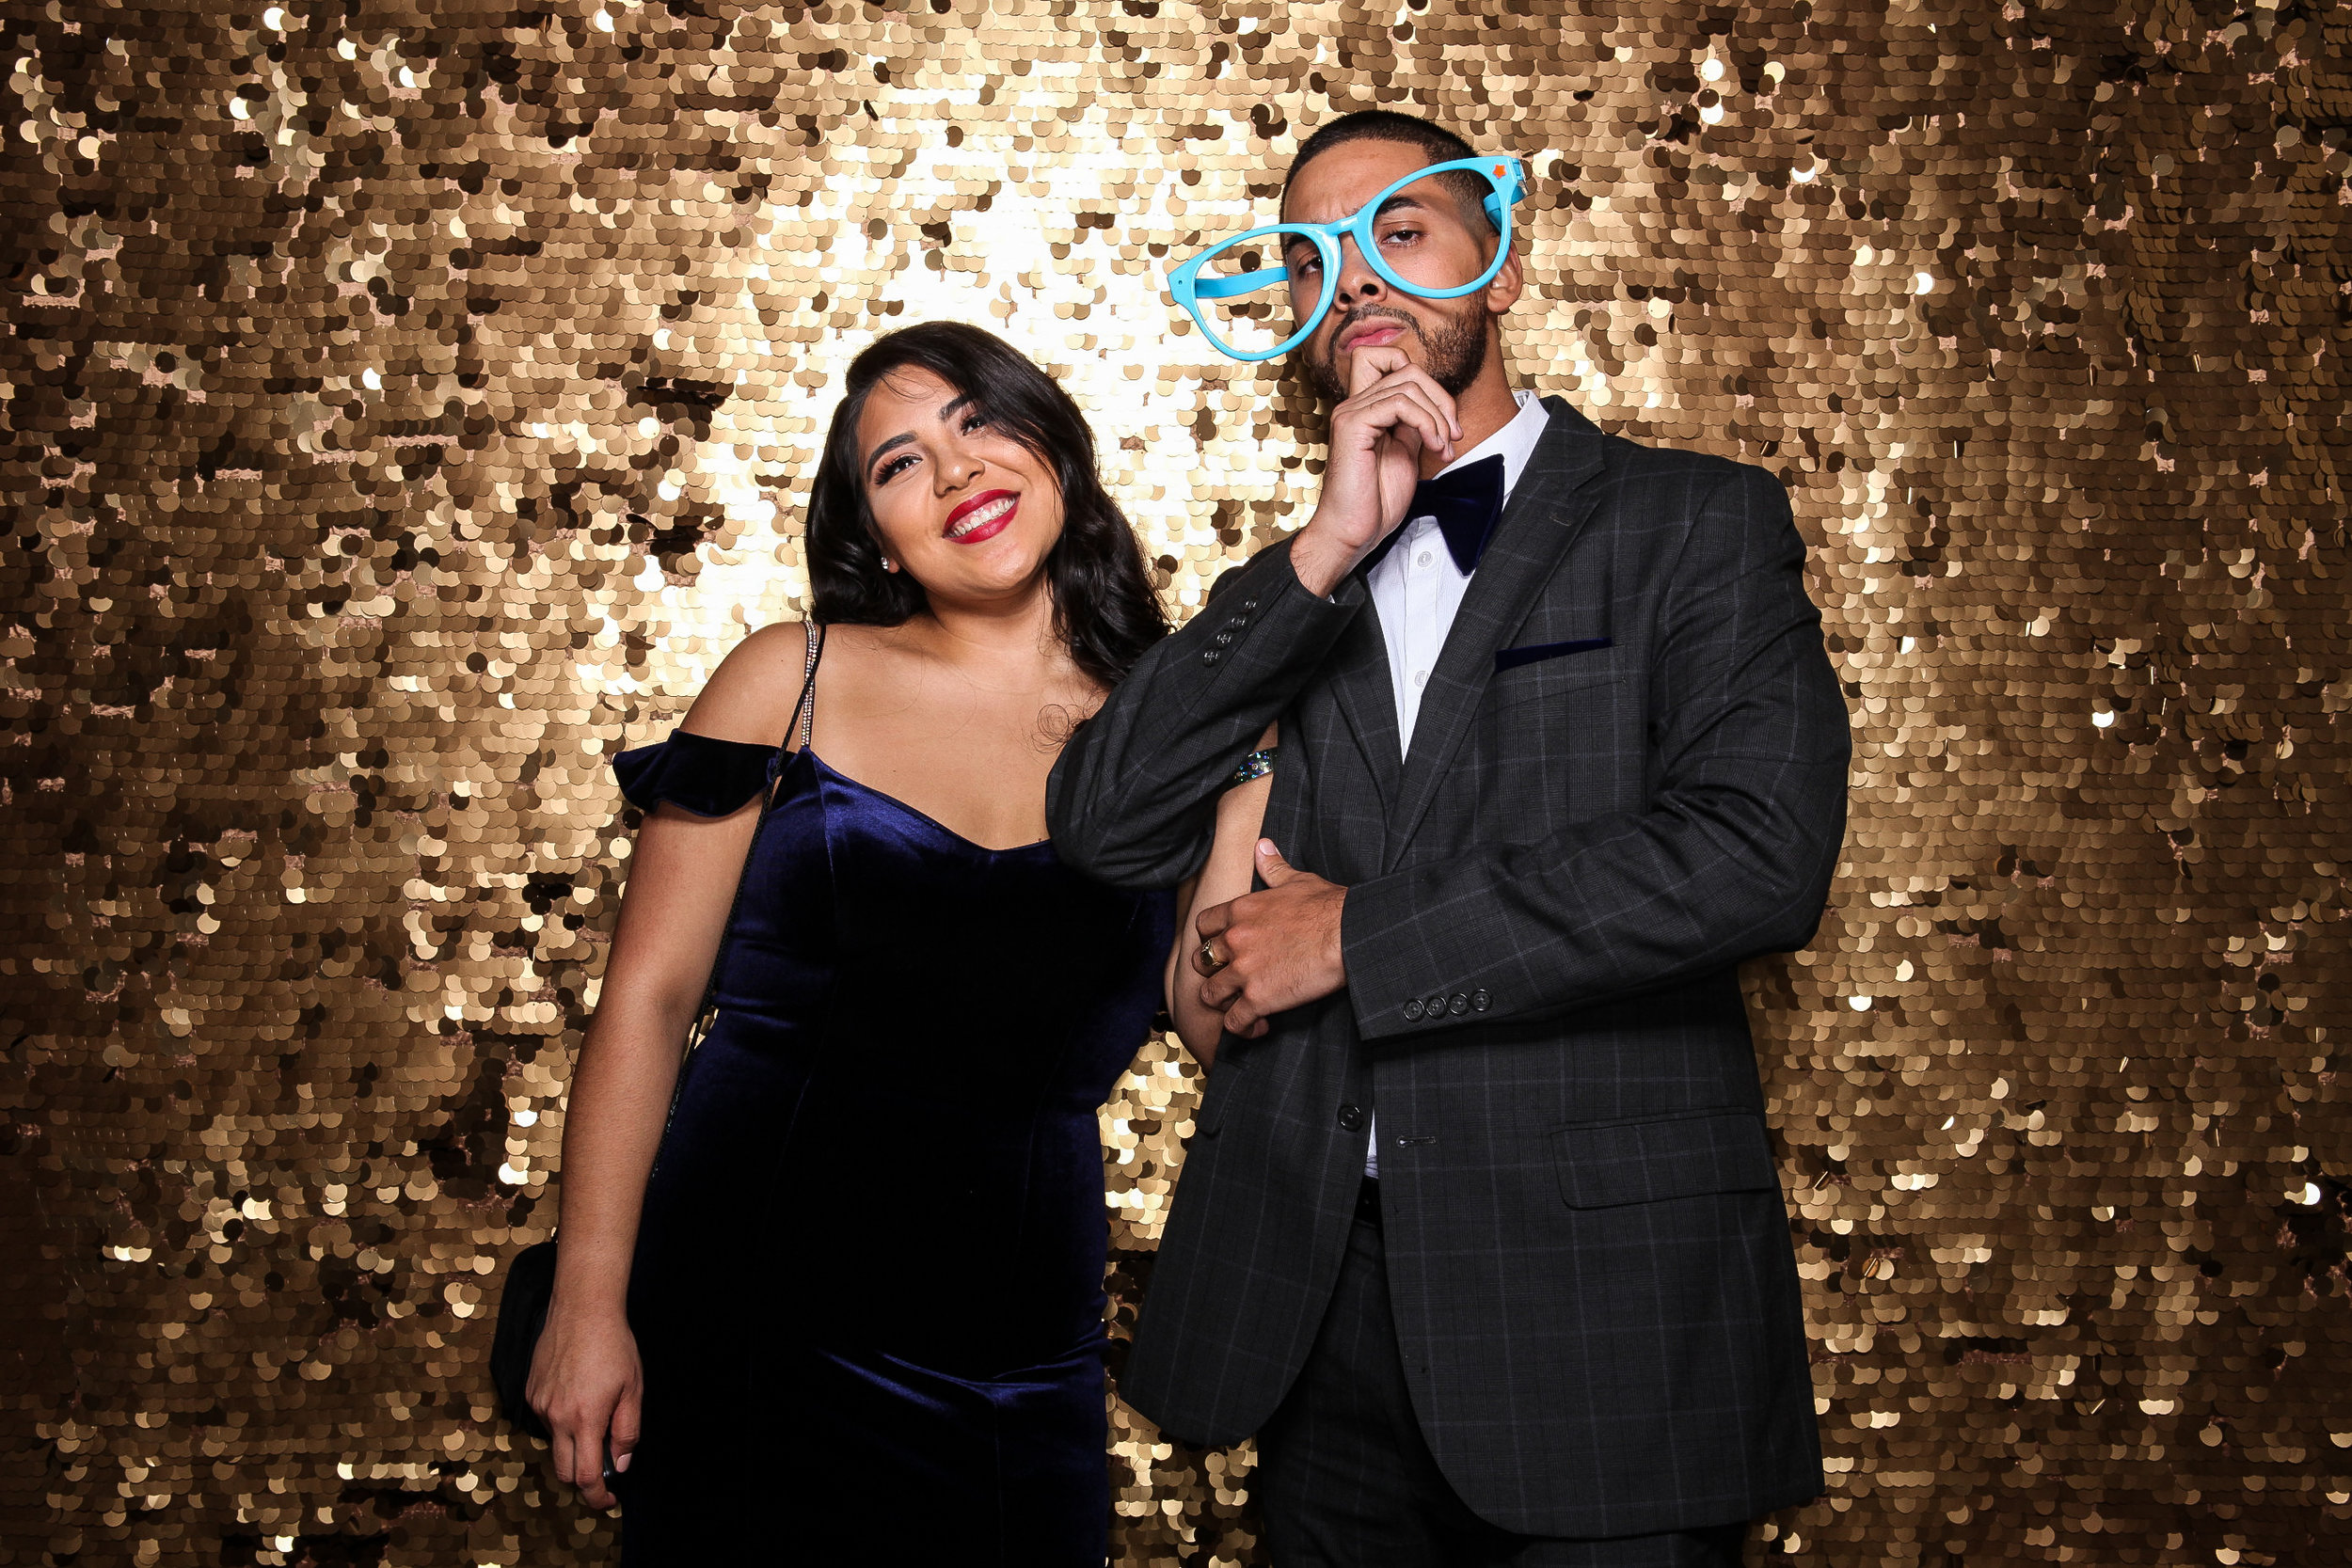 20190503_Adelphi_Senior_Formal-164.jpg